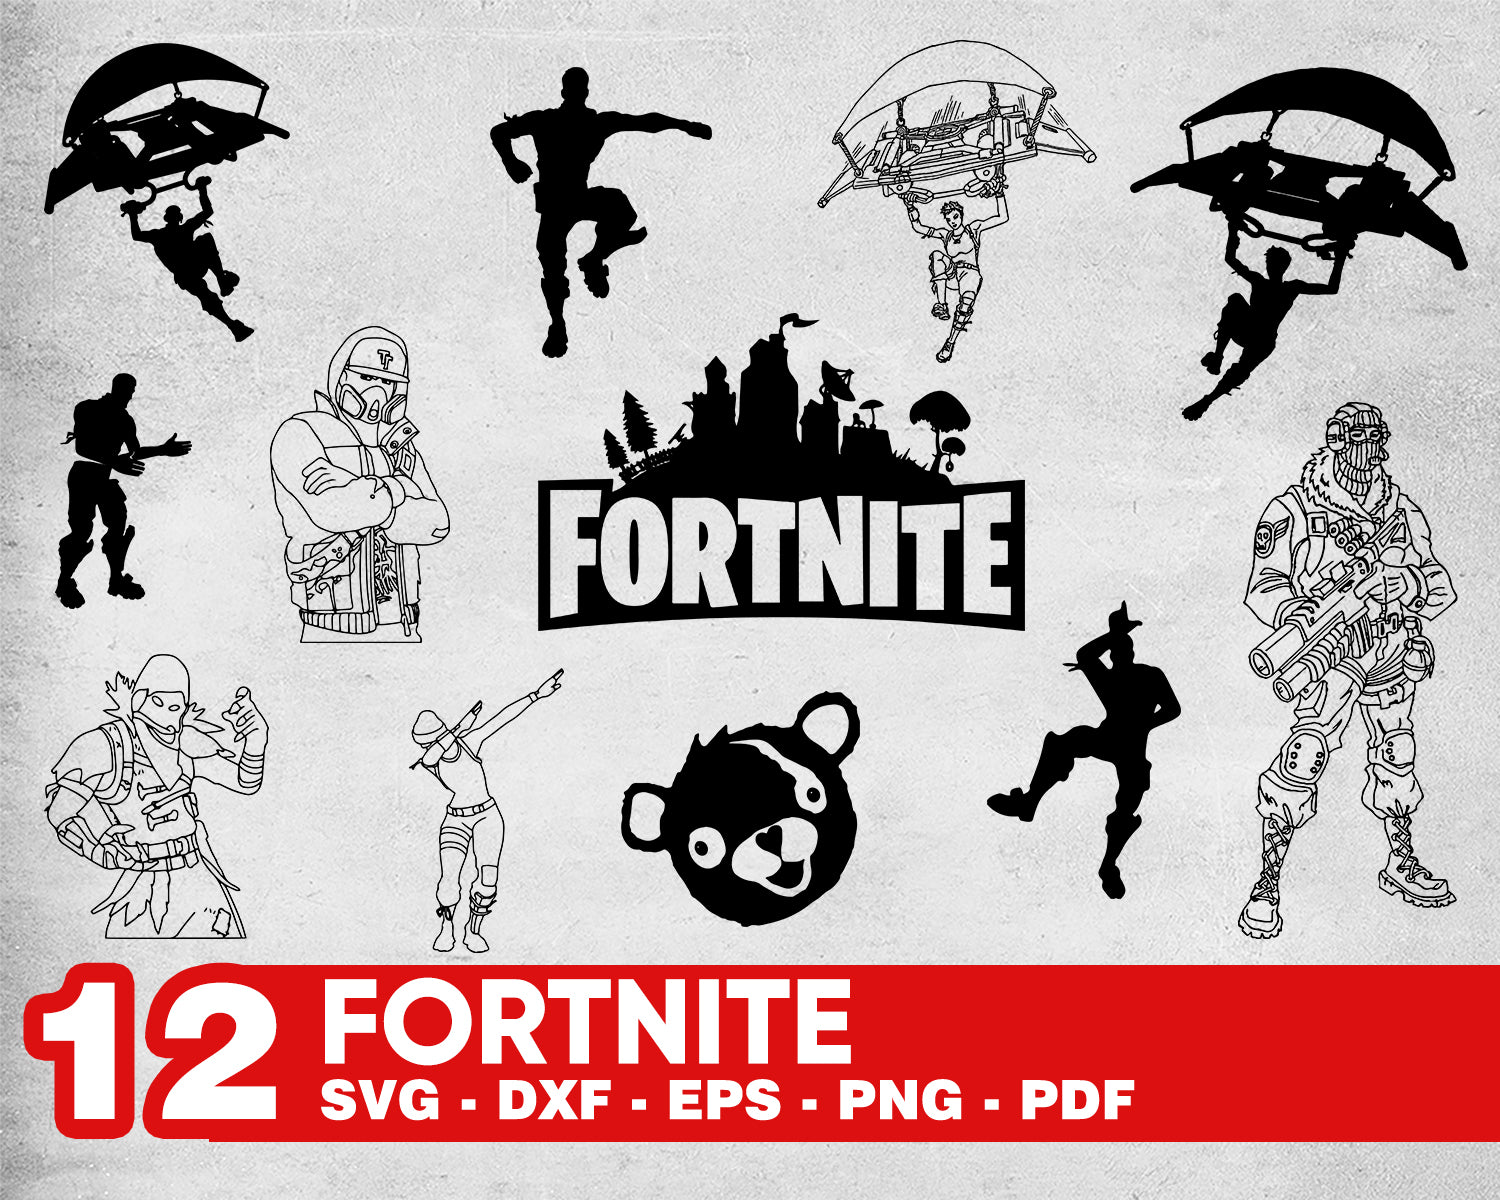 Fortnite Svg Png Dxf Fortnite Bundle Svg Png Dxf Fortnite Logo Svg Png Clipartic